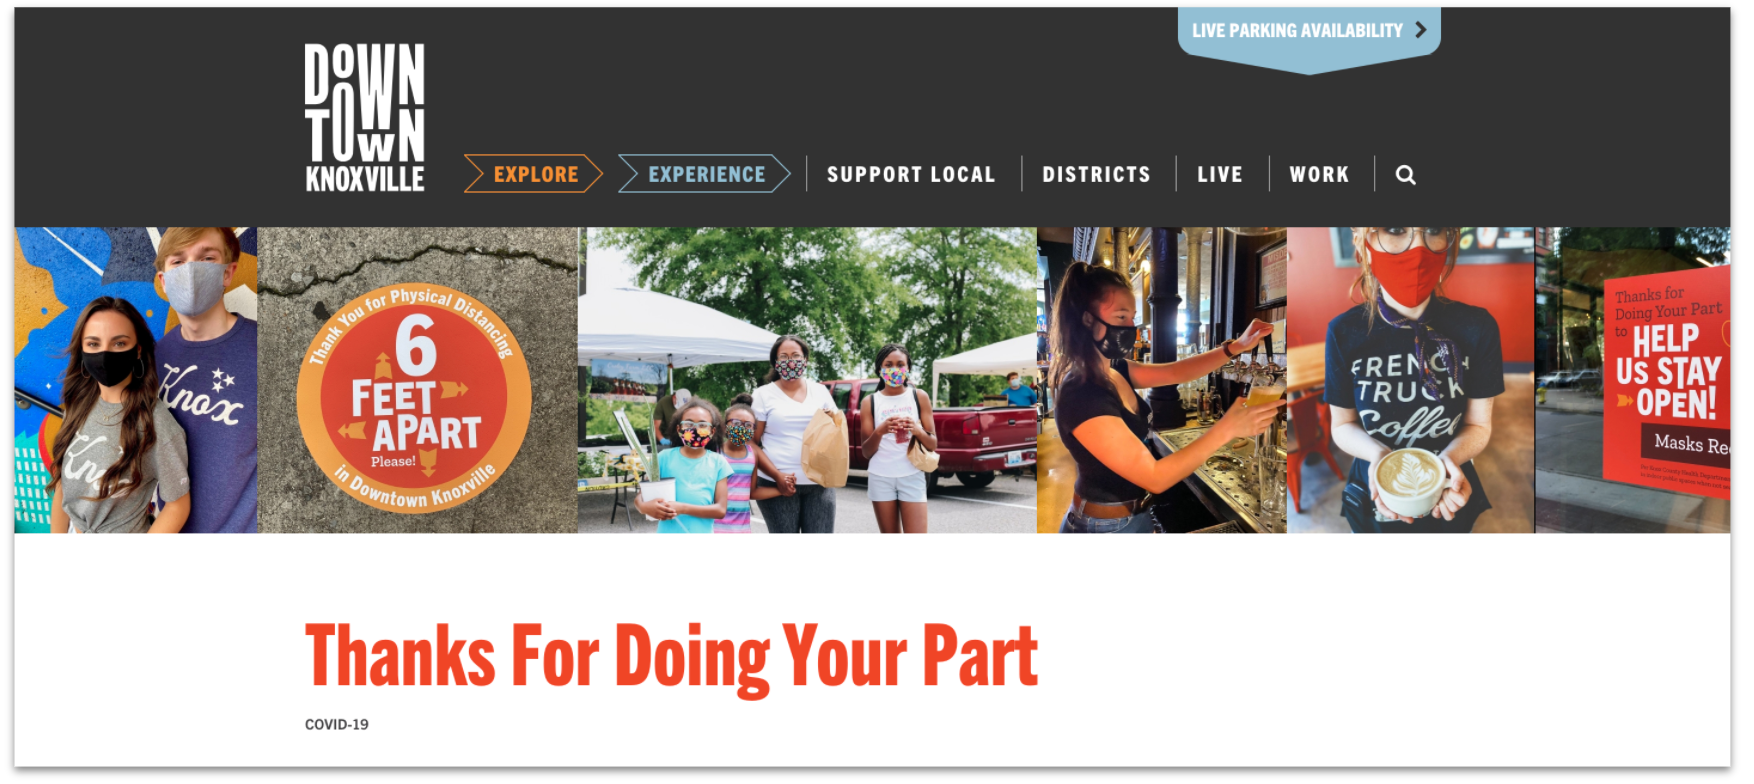 Downtown Knoxville Alliance website reminding people to support local